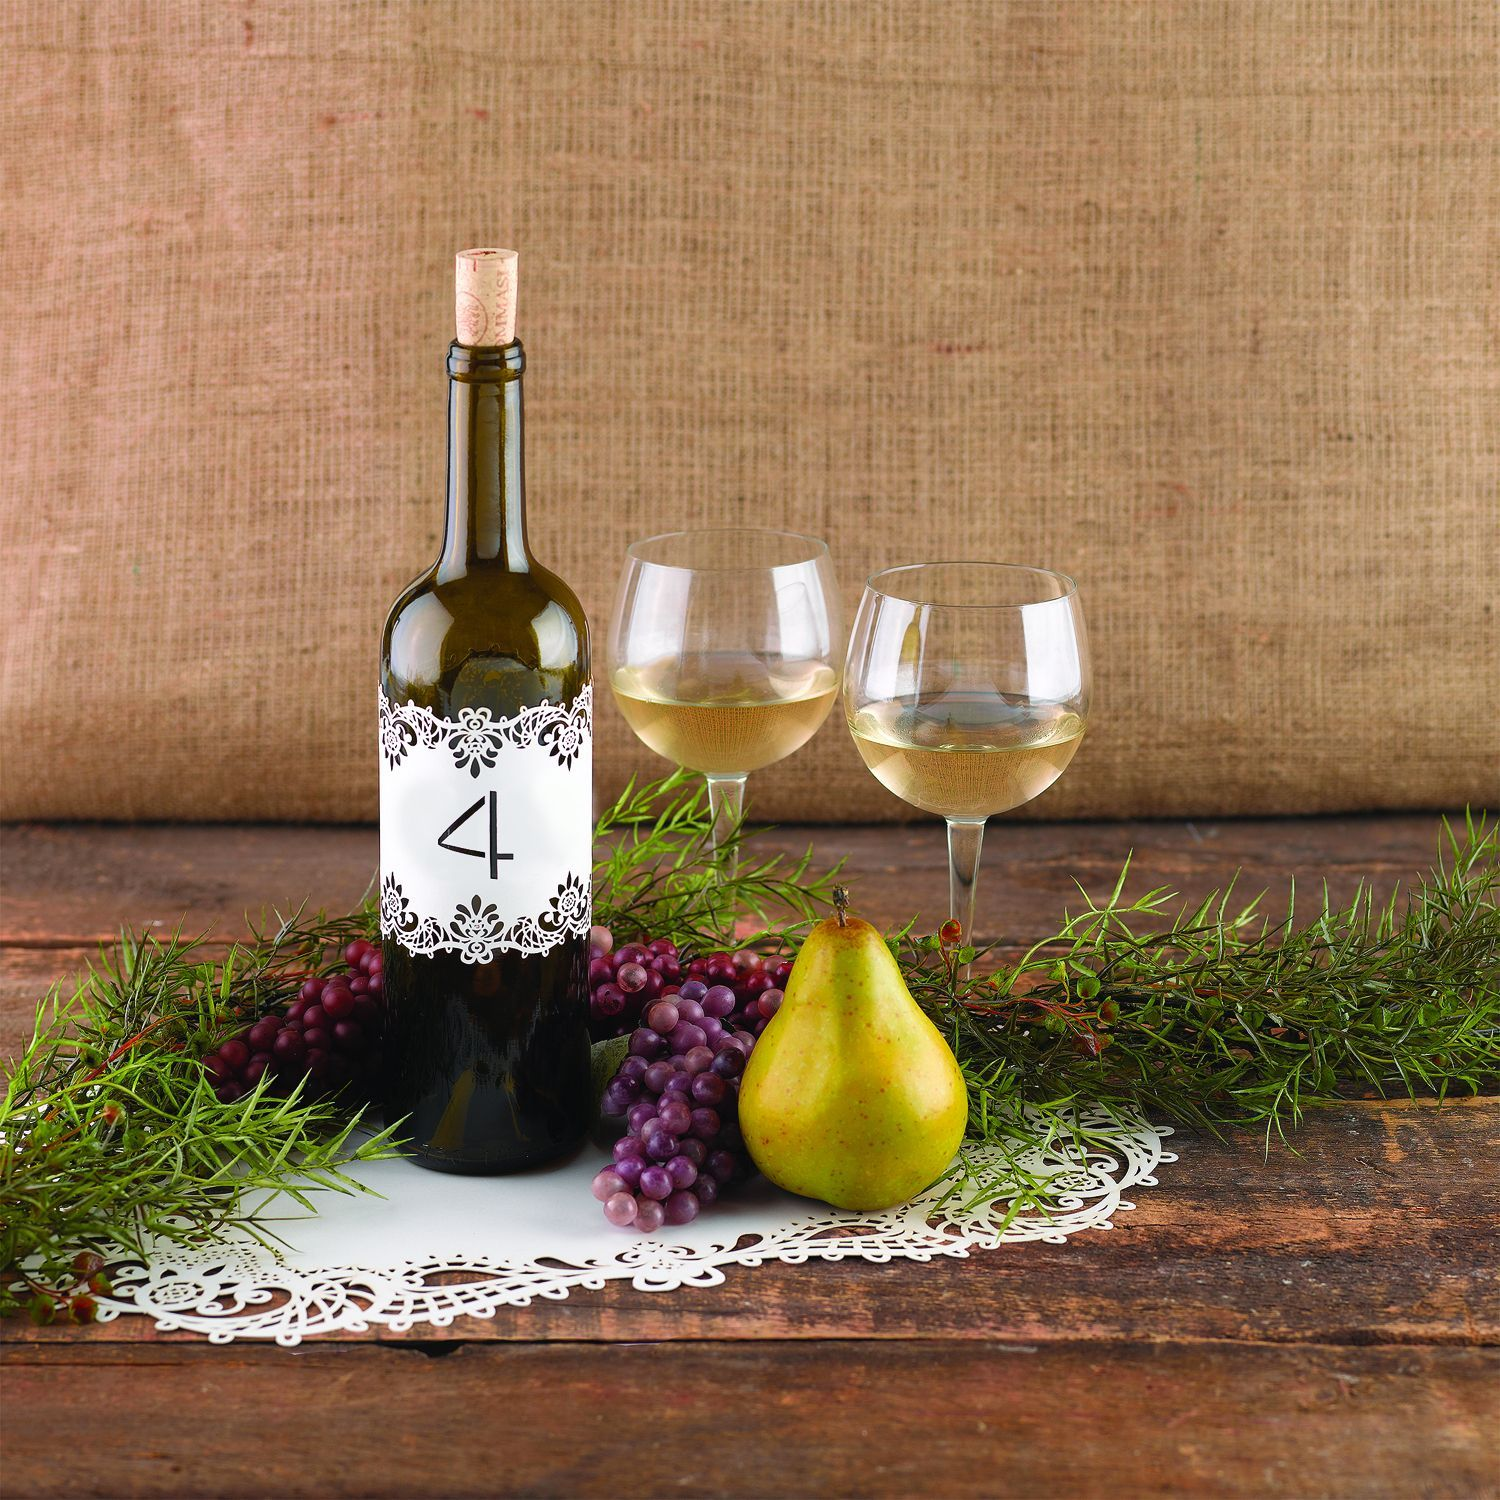 Add elegance to your centerpieces with these white decoration wraps, featuring the numbers 1-10. Clear seals are included to secure the wraps around candles, wine bottles and more without leaving a tacky line.